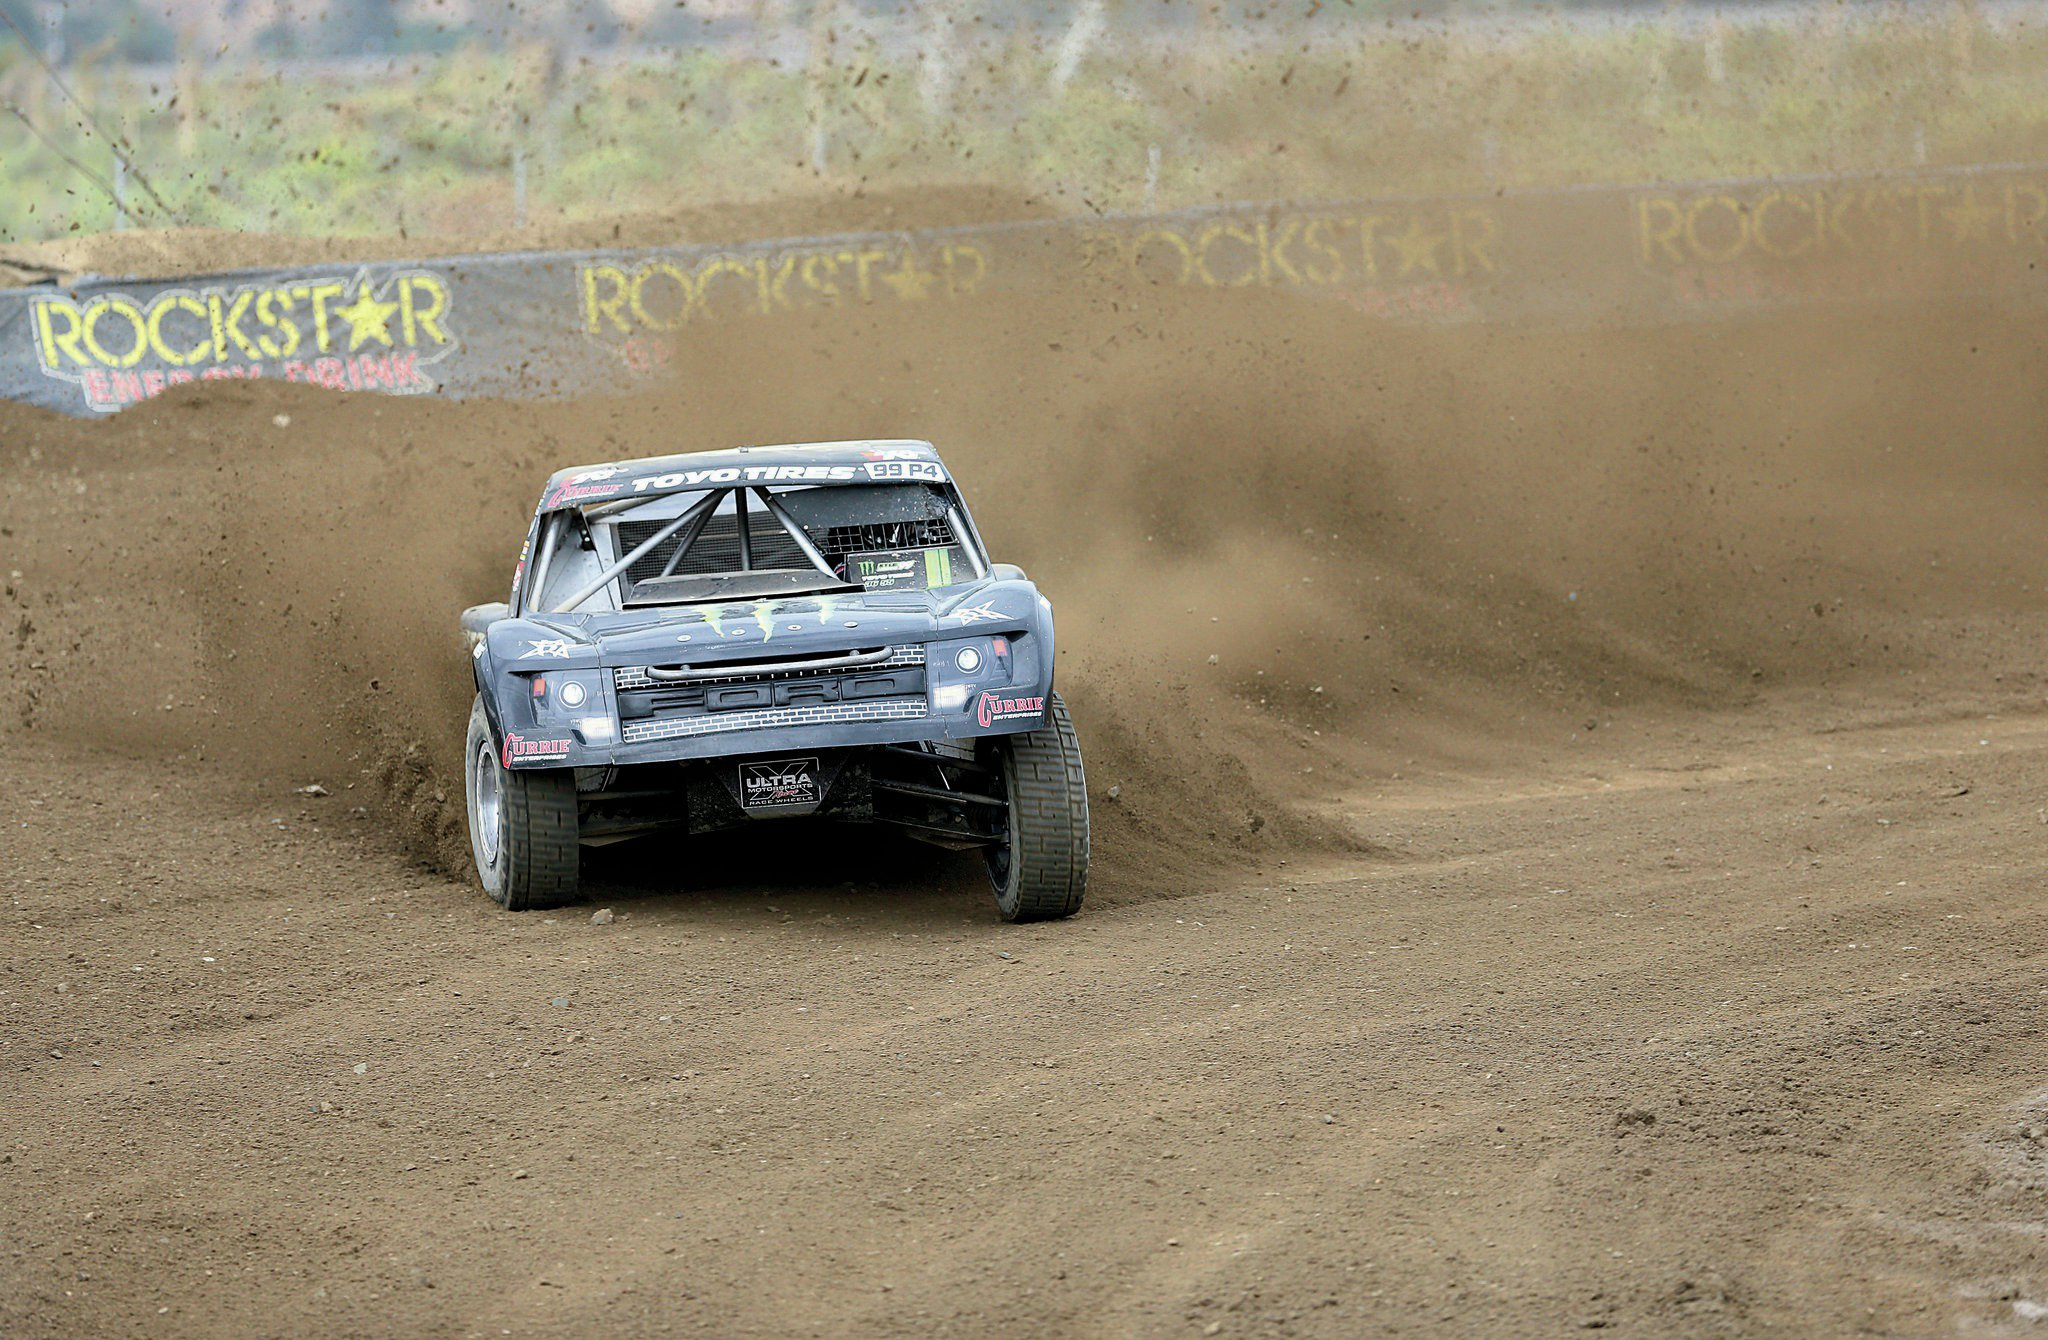 Kyle Leduc grabs the top qualifying spot for Round 9 at Glen Helen. Photo Credit: Ryan Torres